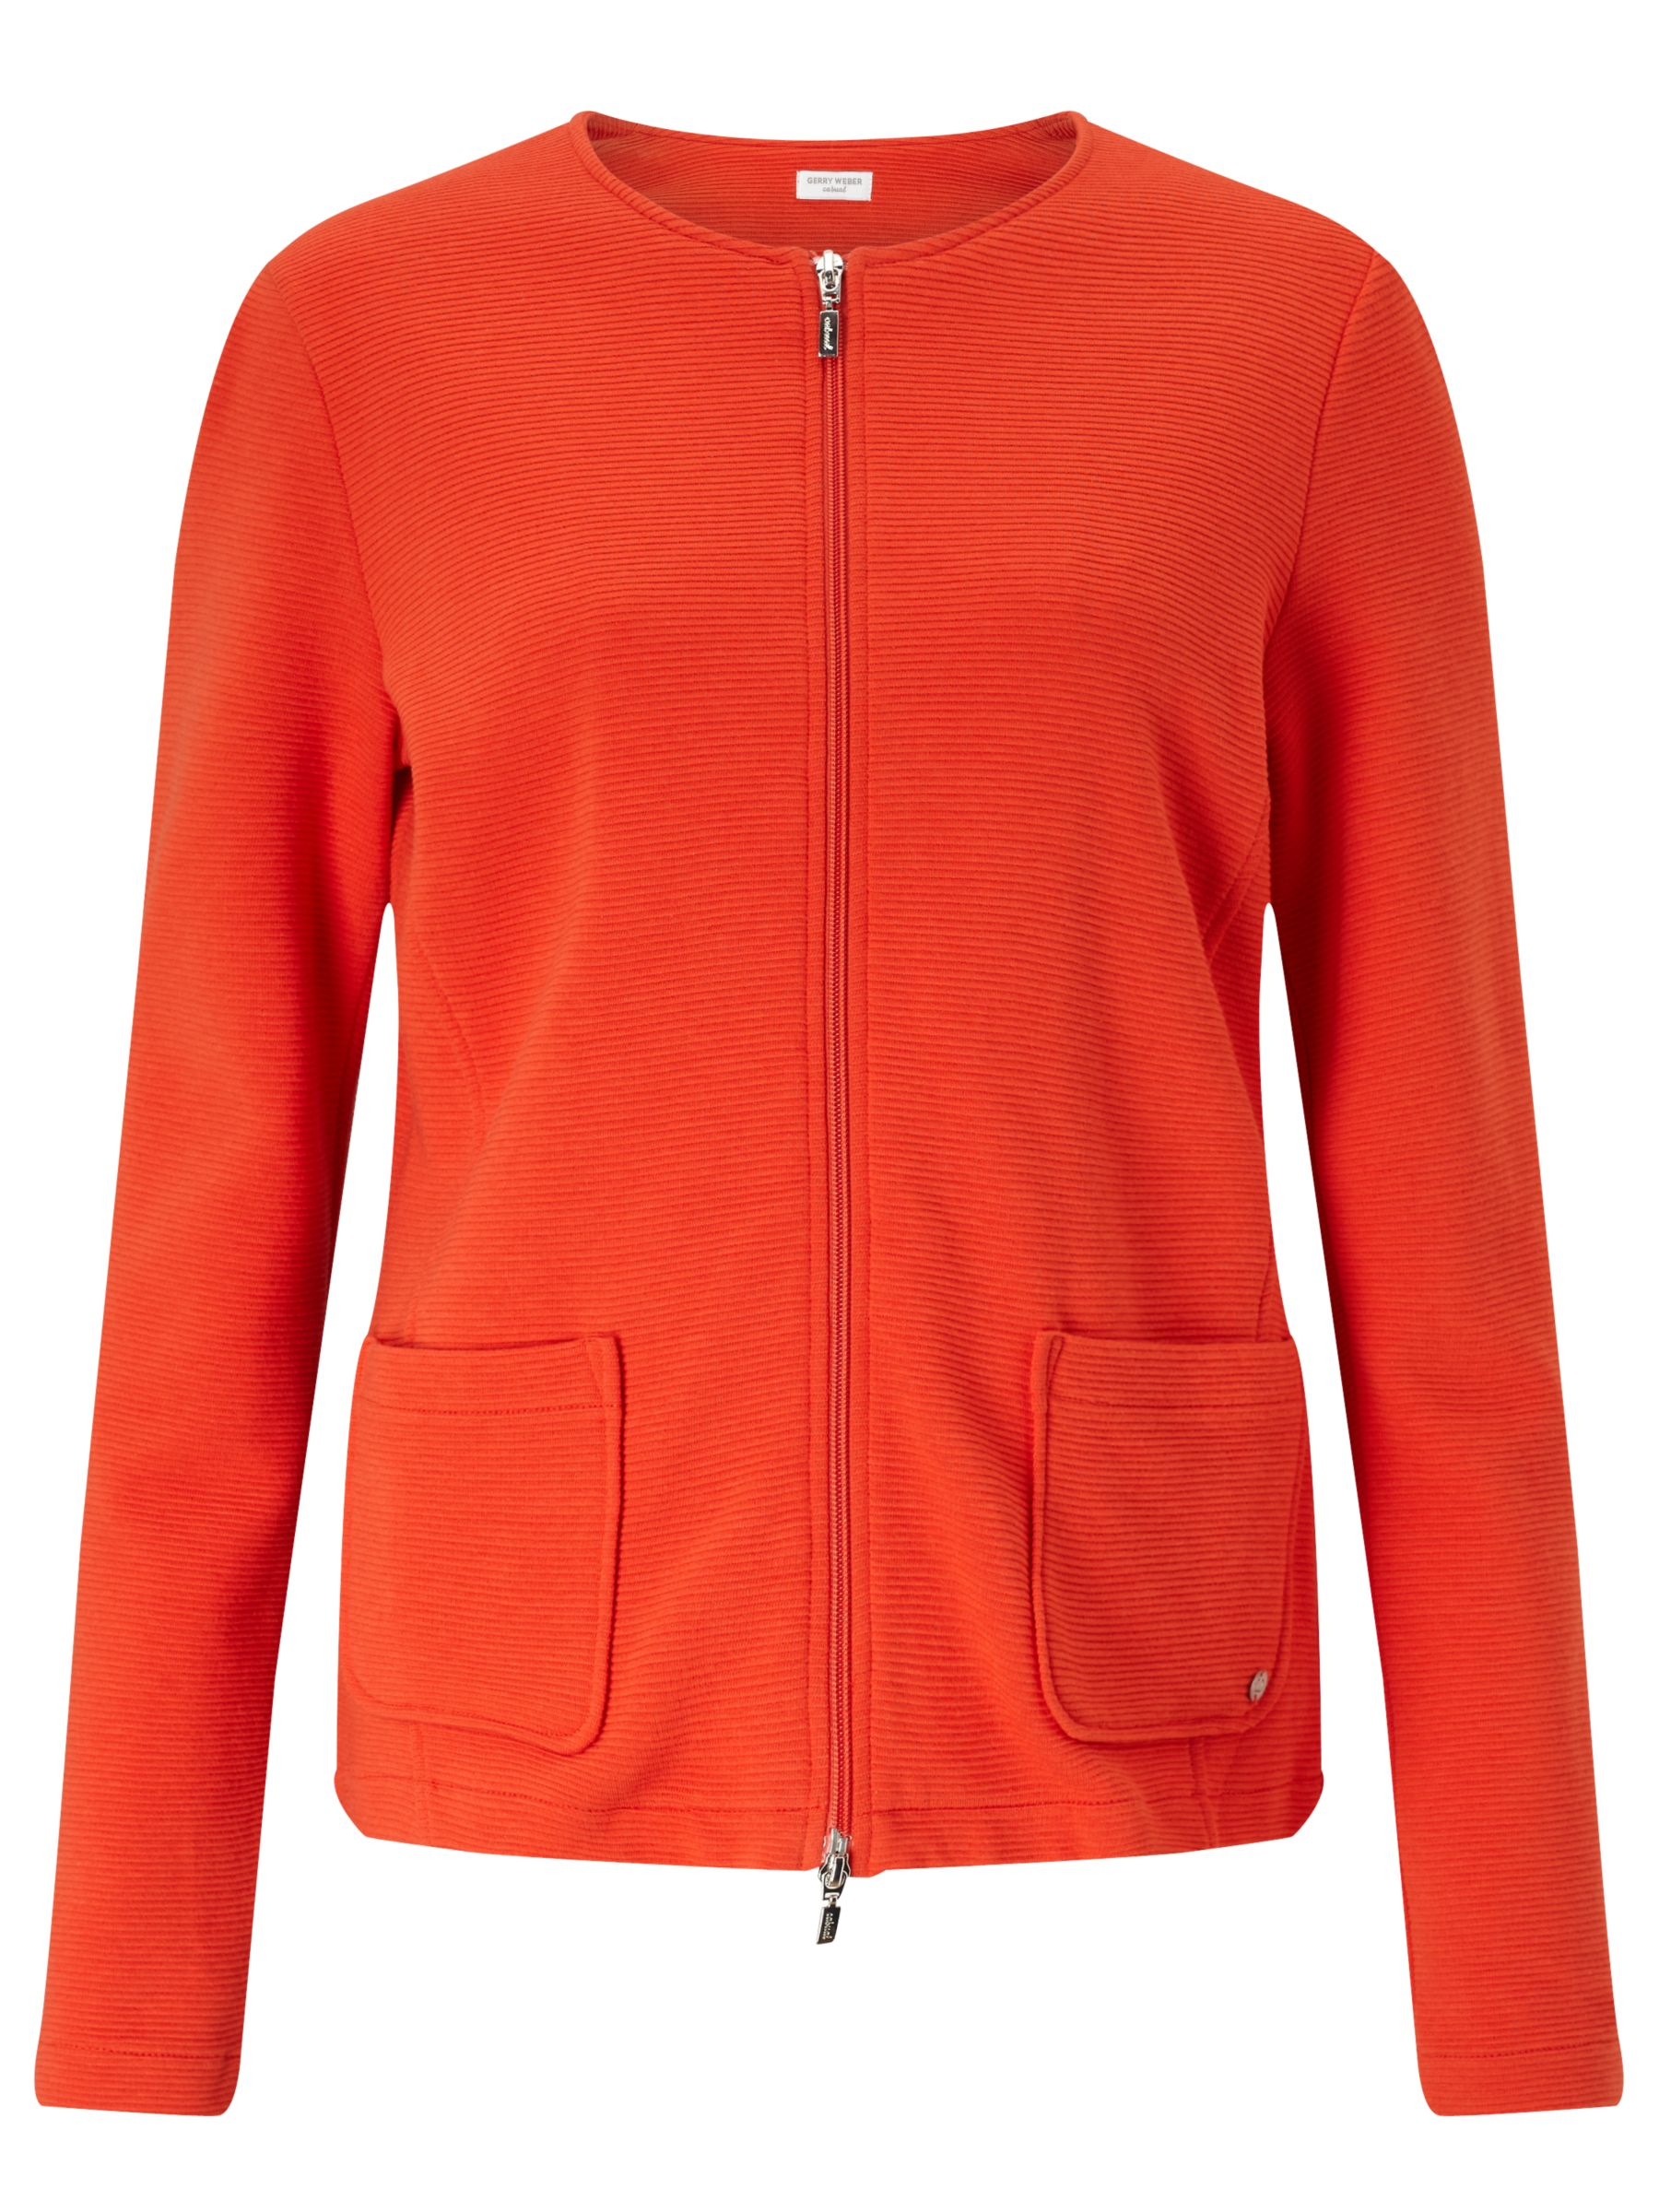 Gerry Weber Gerry Weber Ribbed Jersey Jacket, Chilli